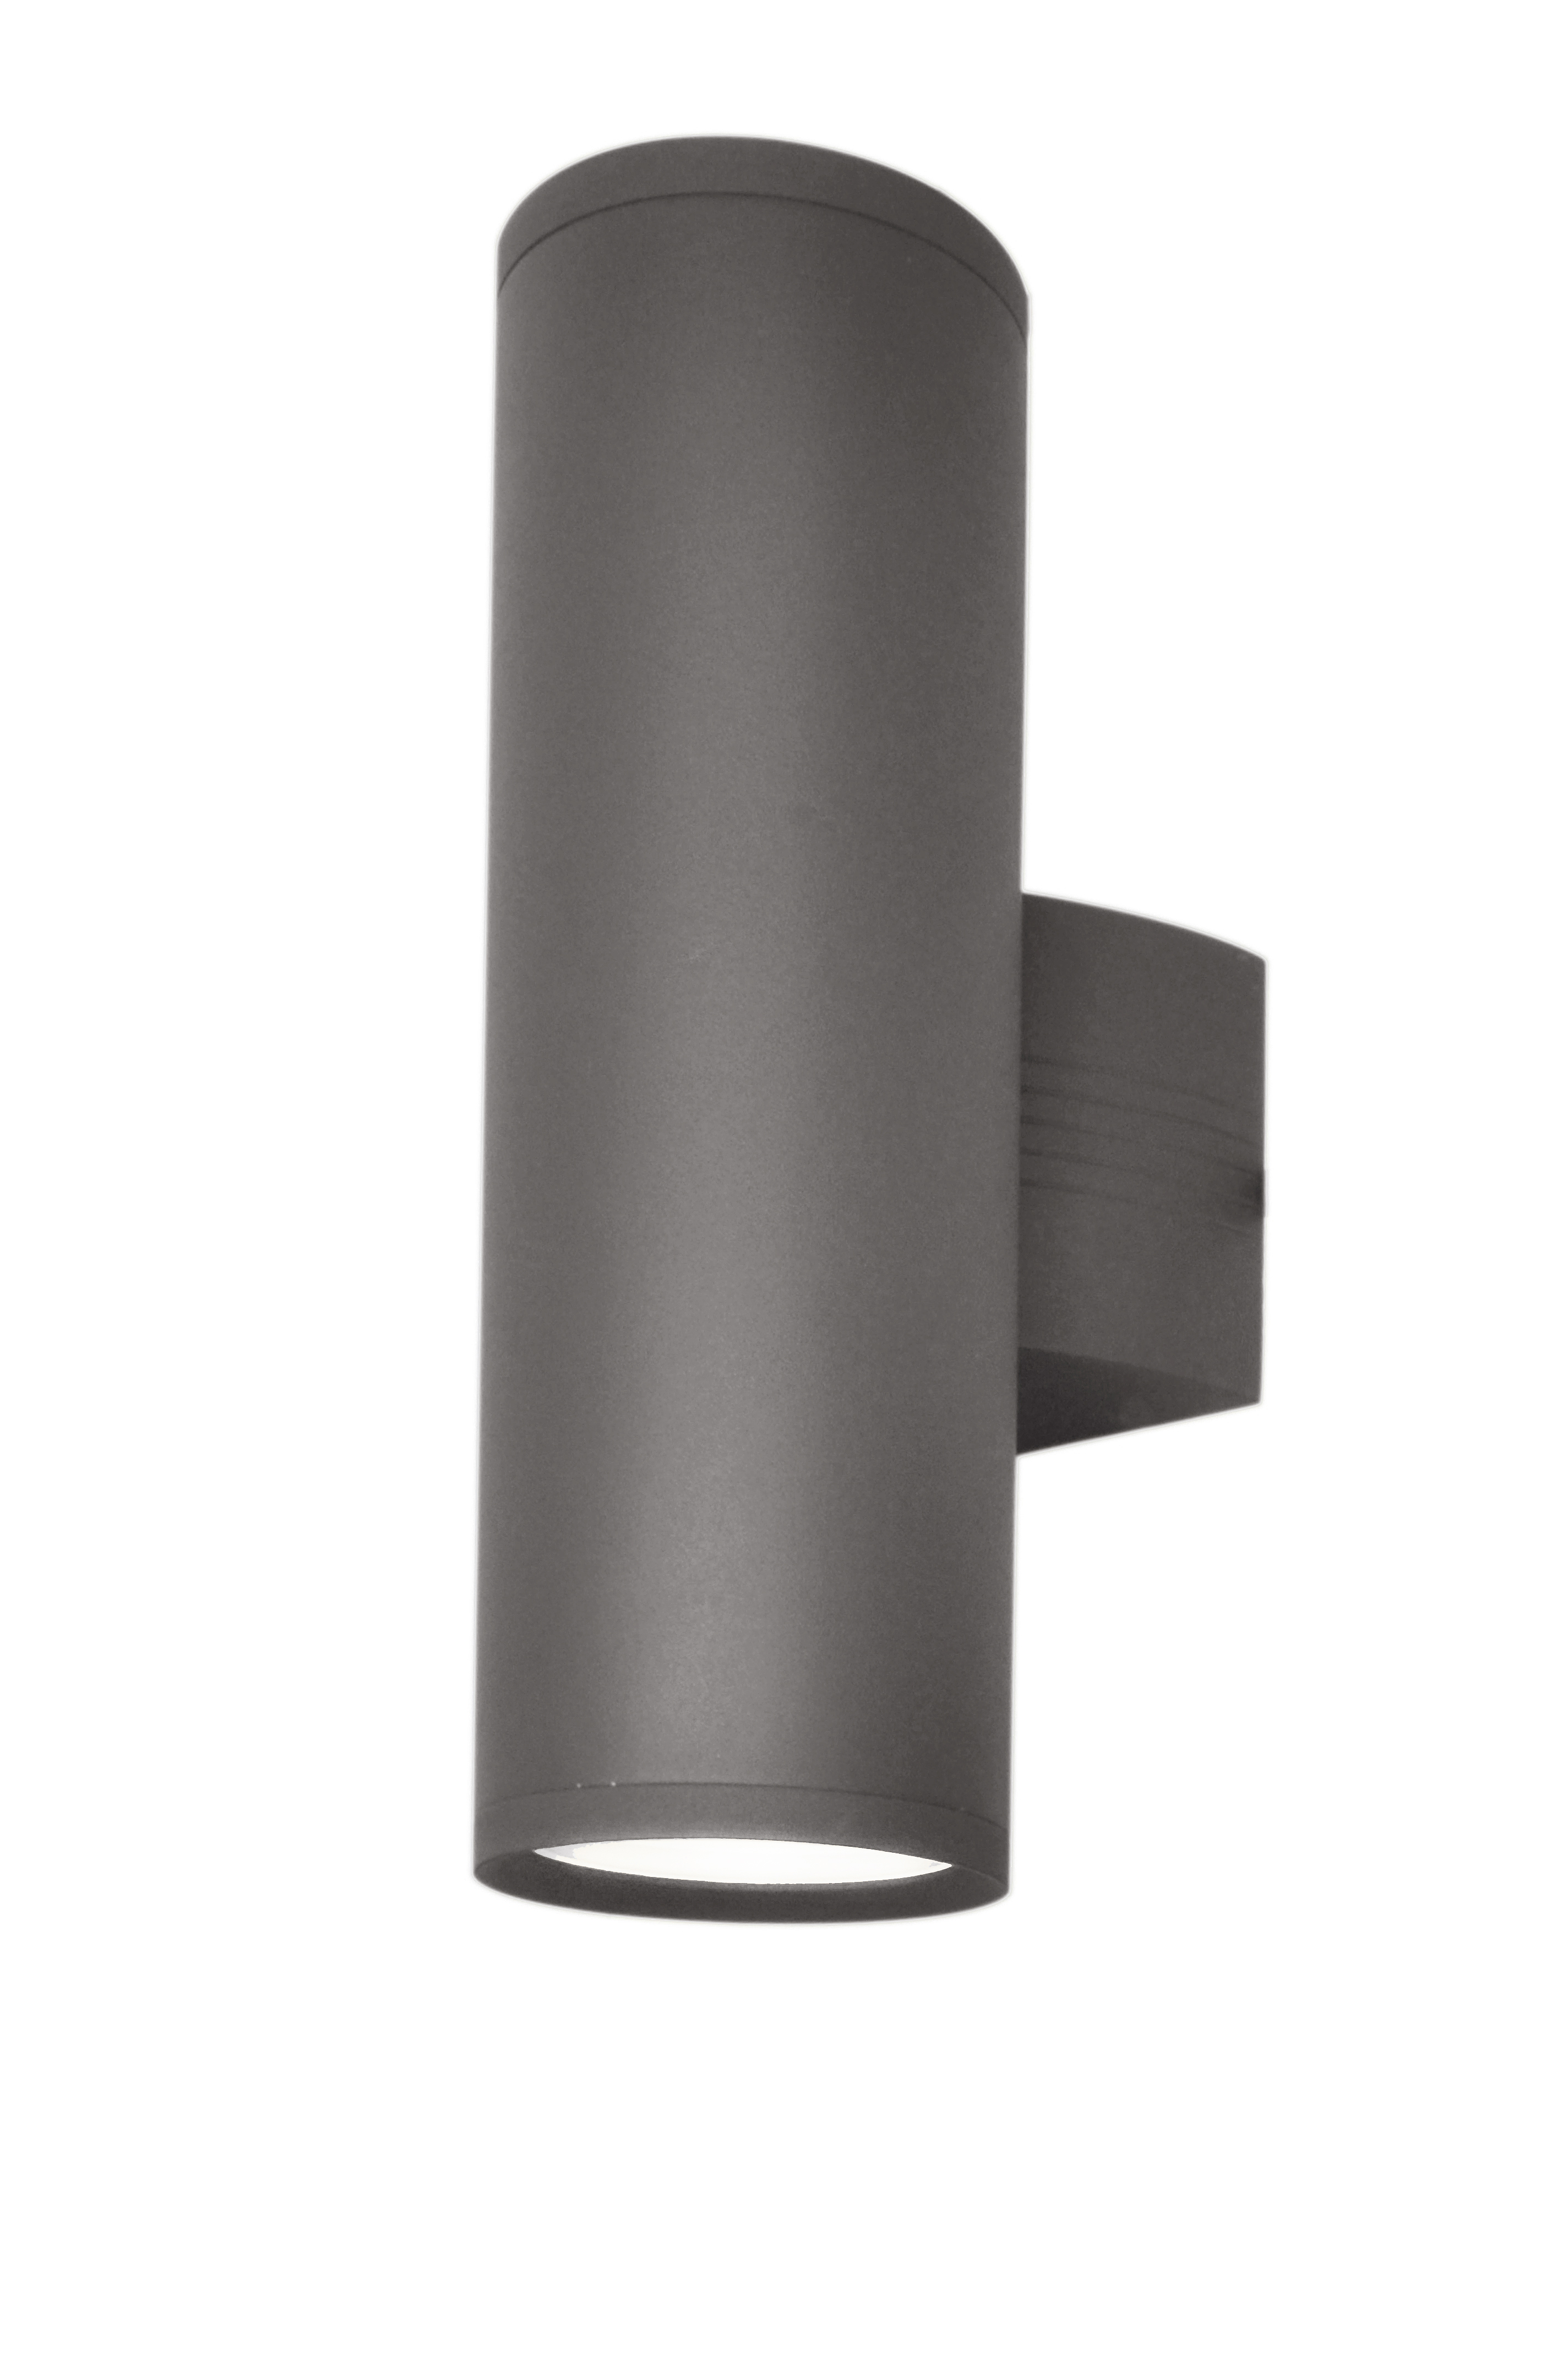 Mounting Height For Exterior Wall Sconces : Lightray LED 2-Light Wall Sconce - Outdoor Wall Mount - Maxim Lighting